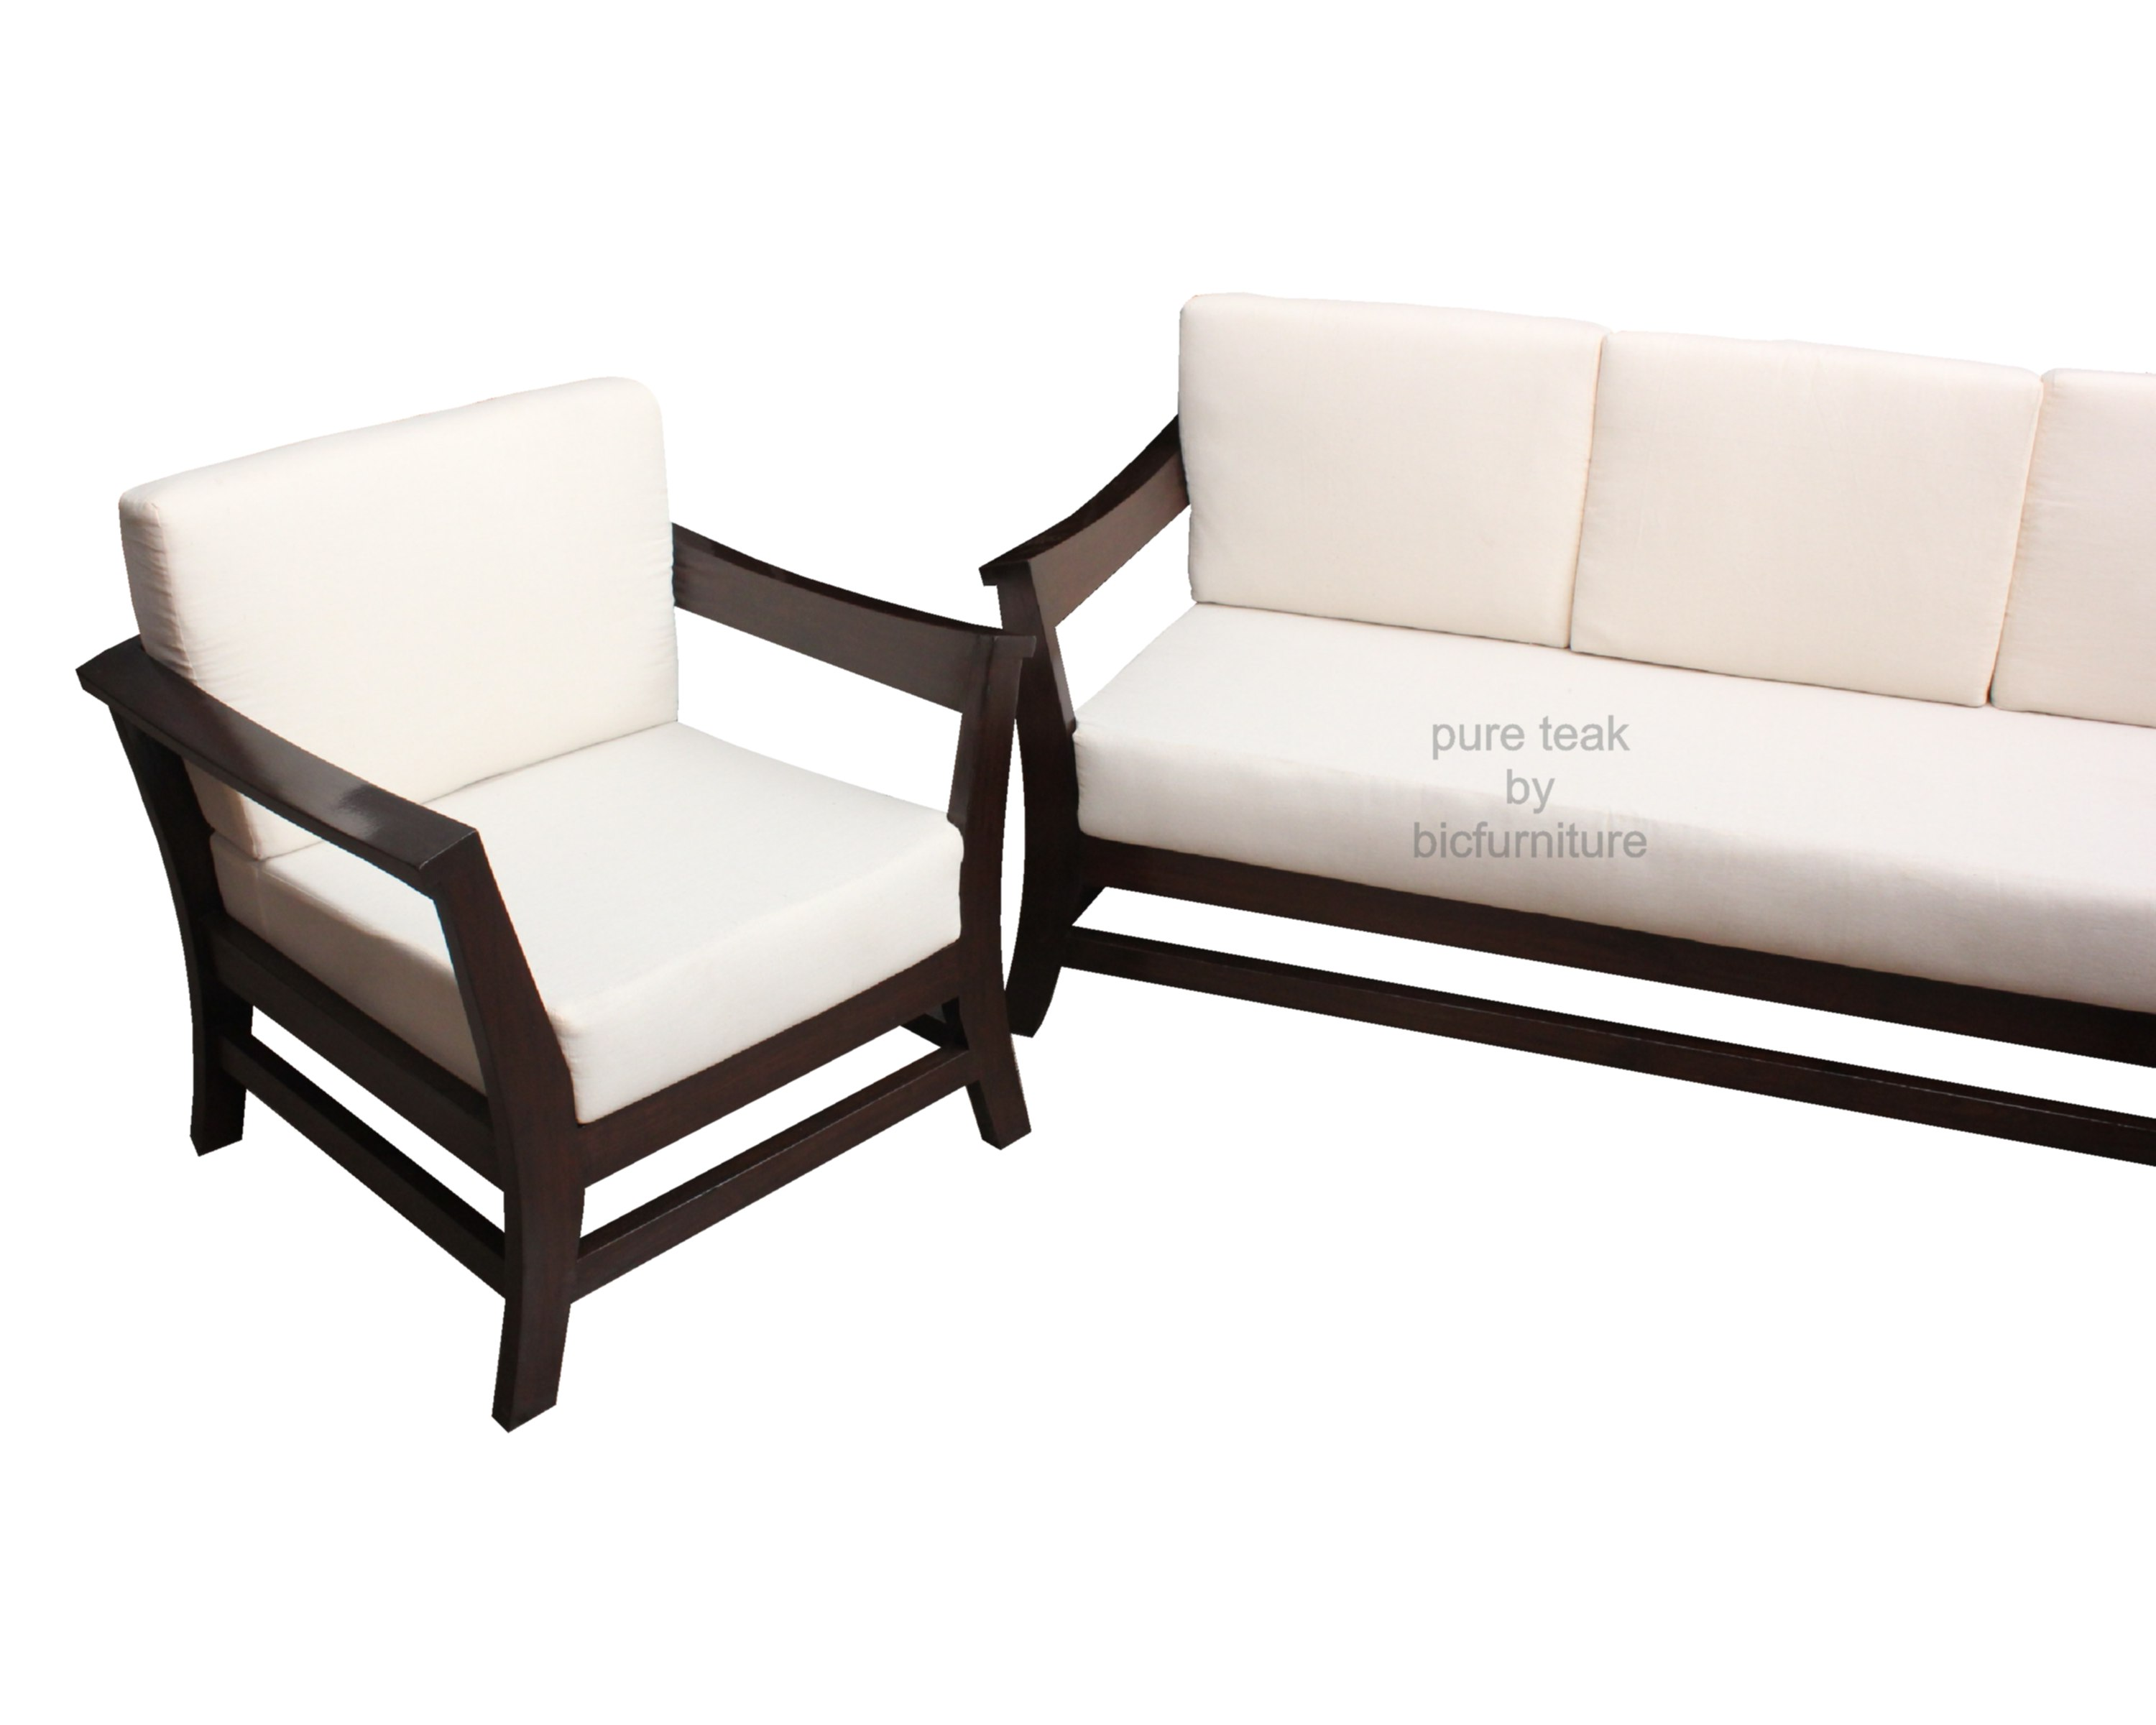 Comfortable Sofa Set in teakwood with lose cushions